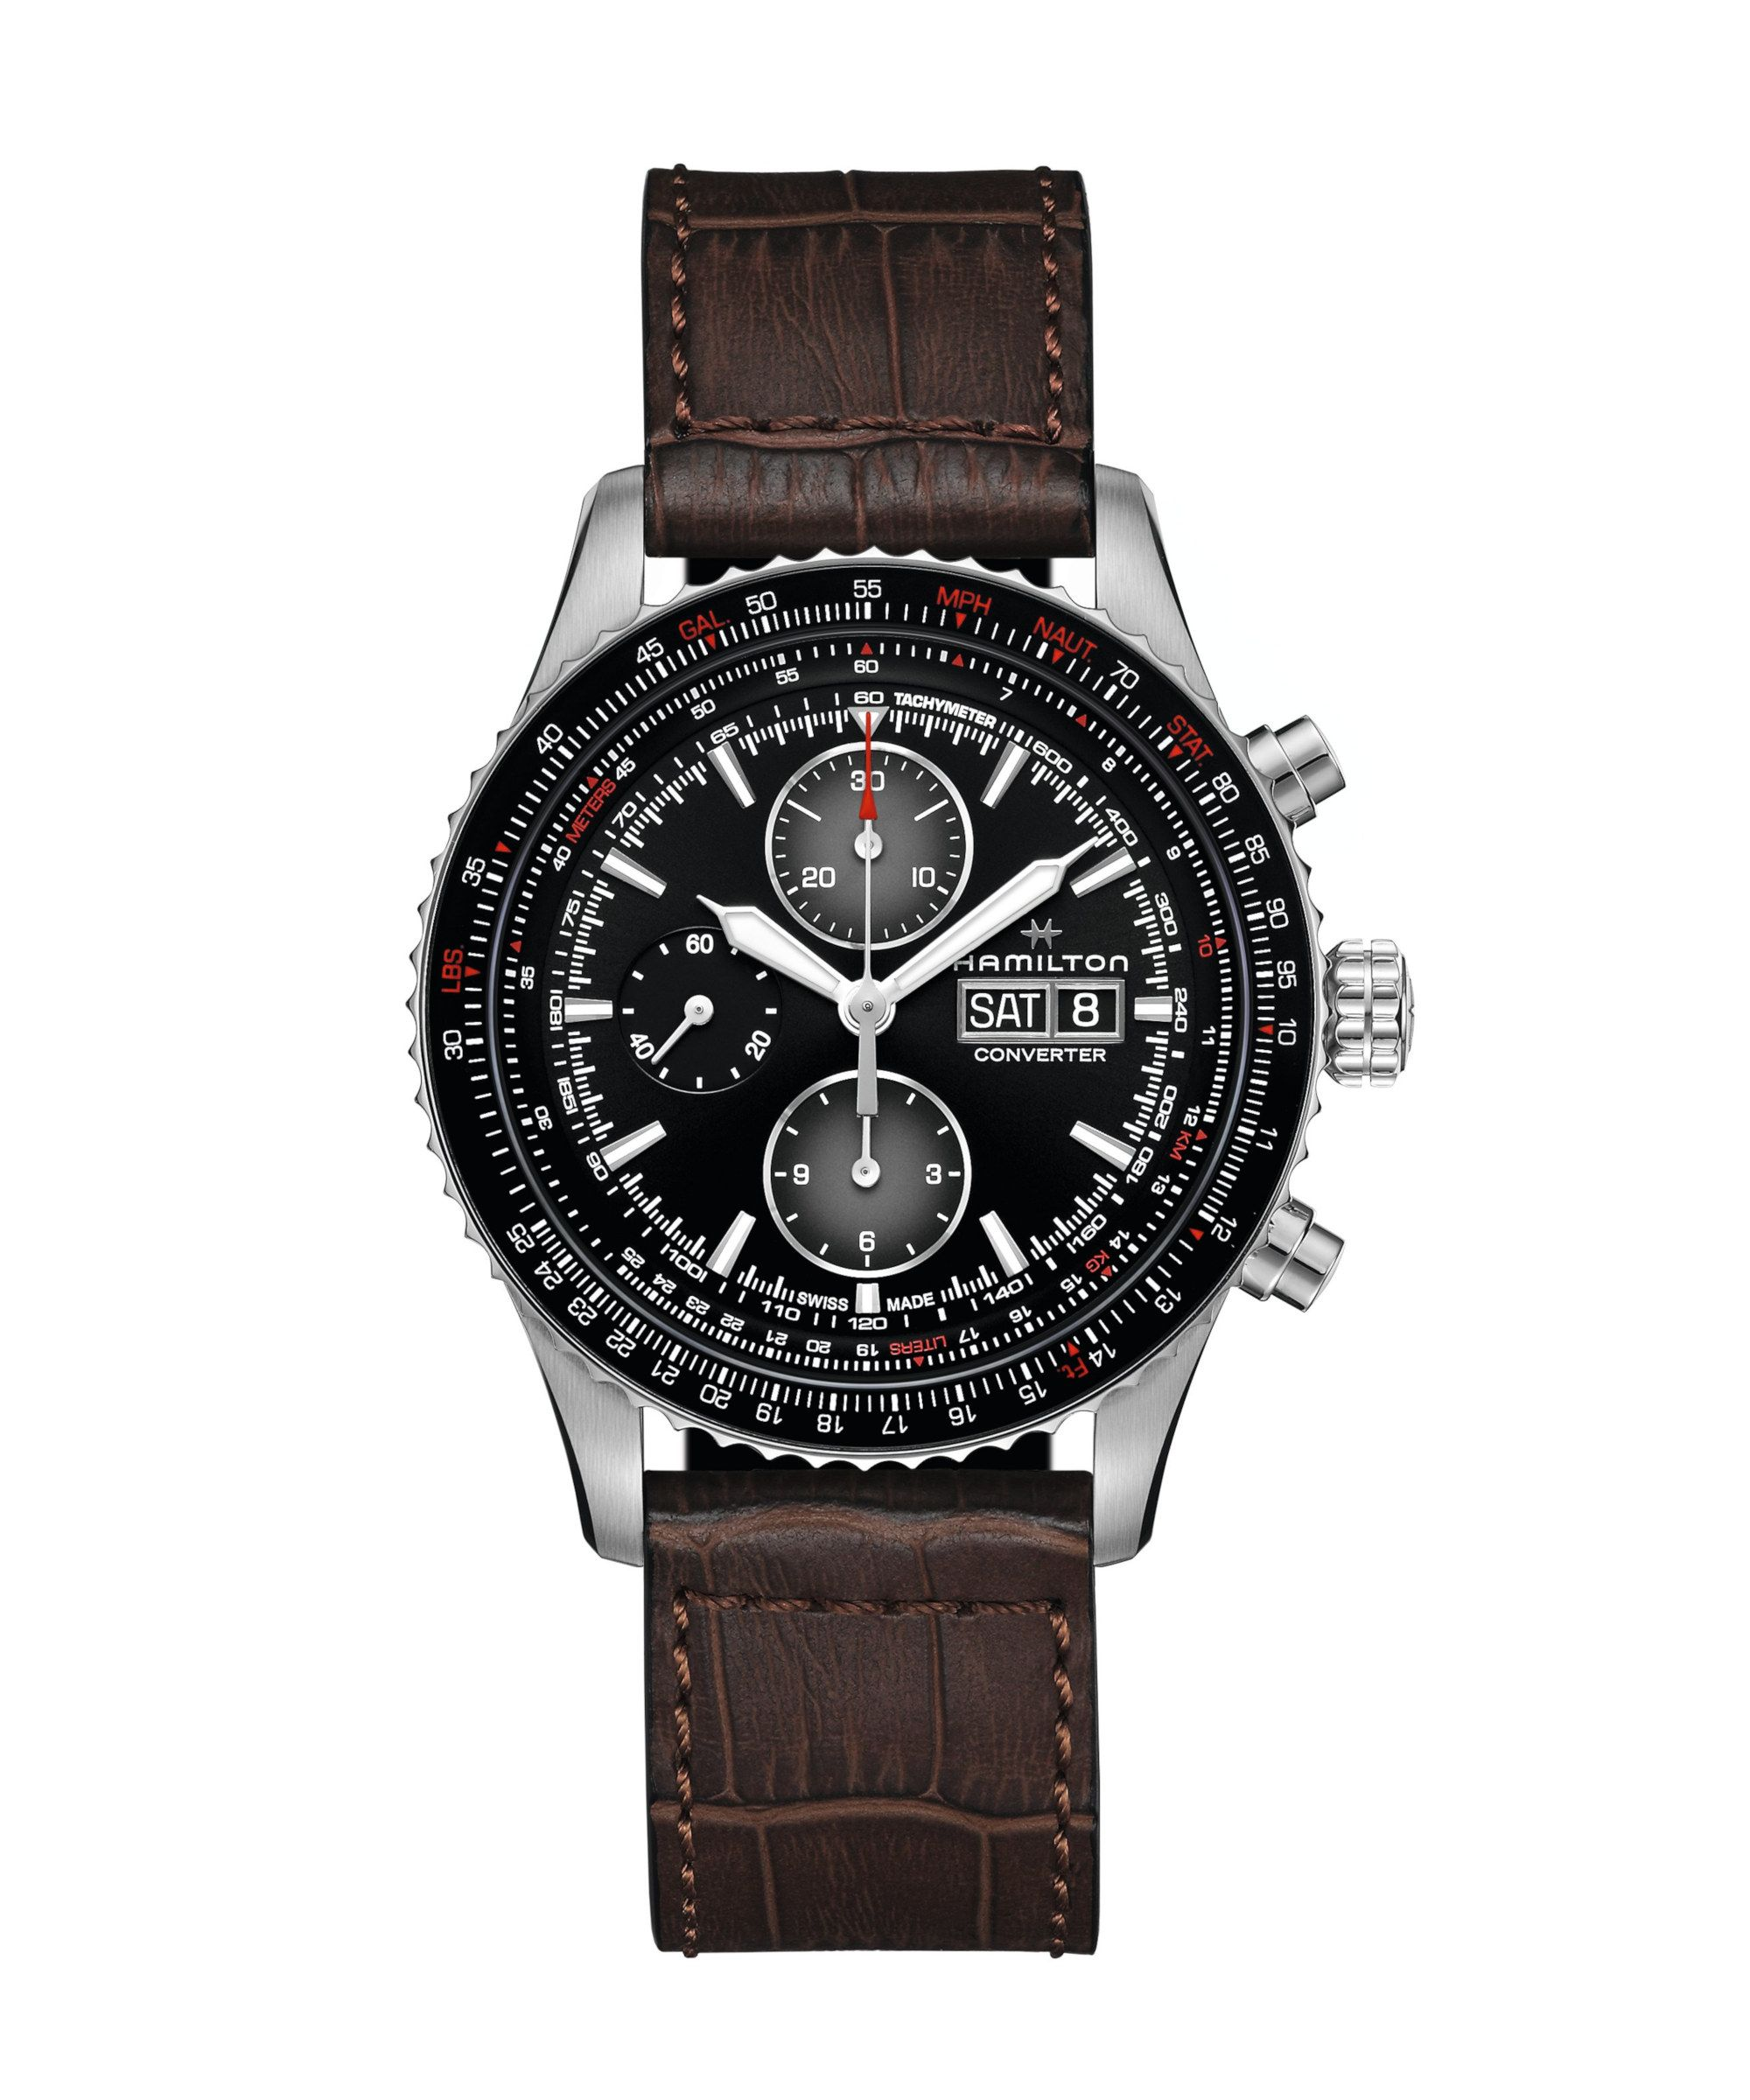 Hamilton Khaki AviationConverter Auto Chrono - H76726530